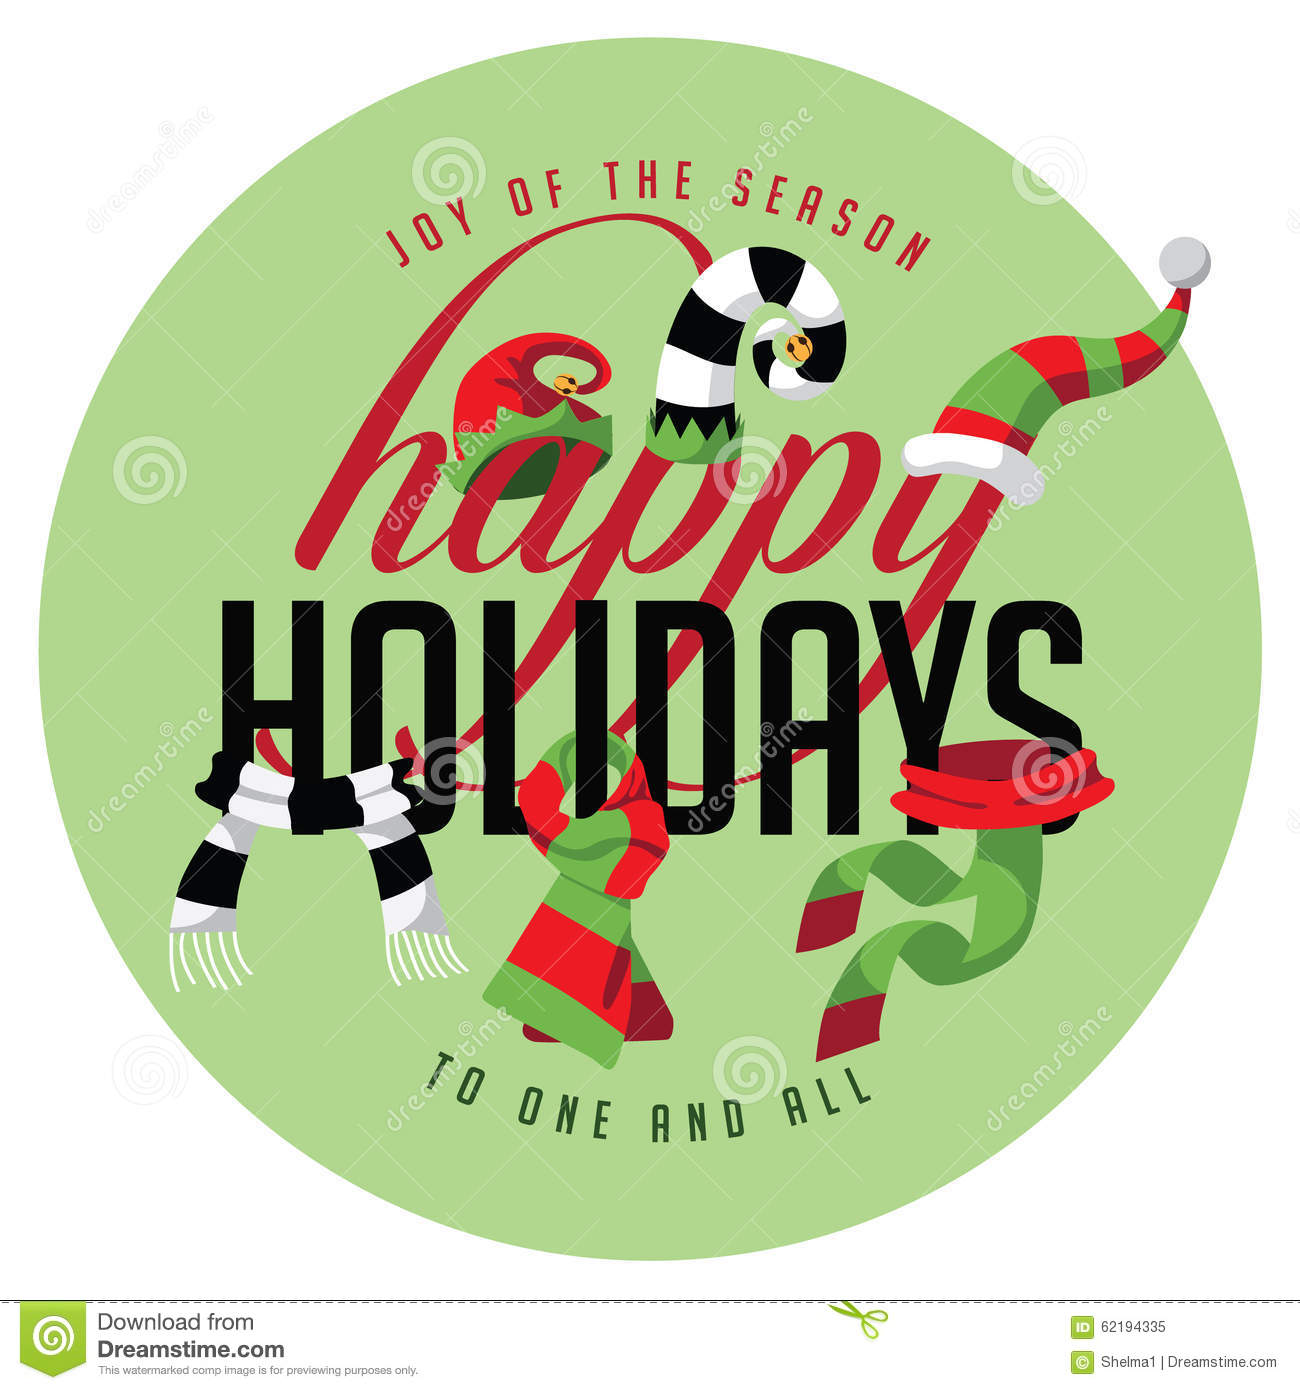 Happy Holidays joy of the season to one and all